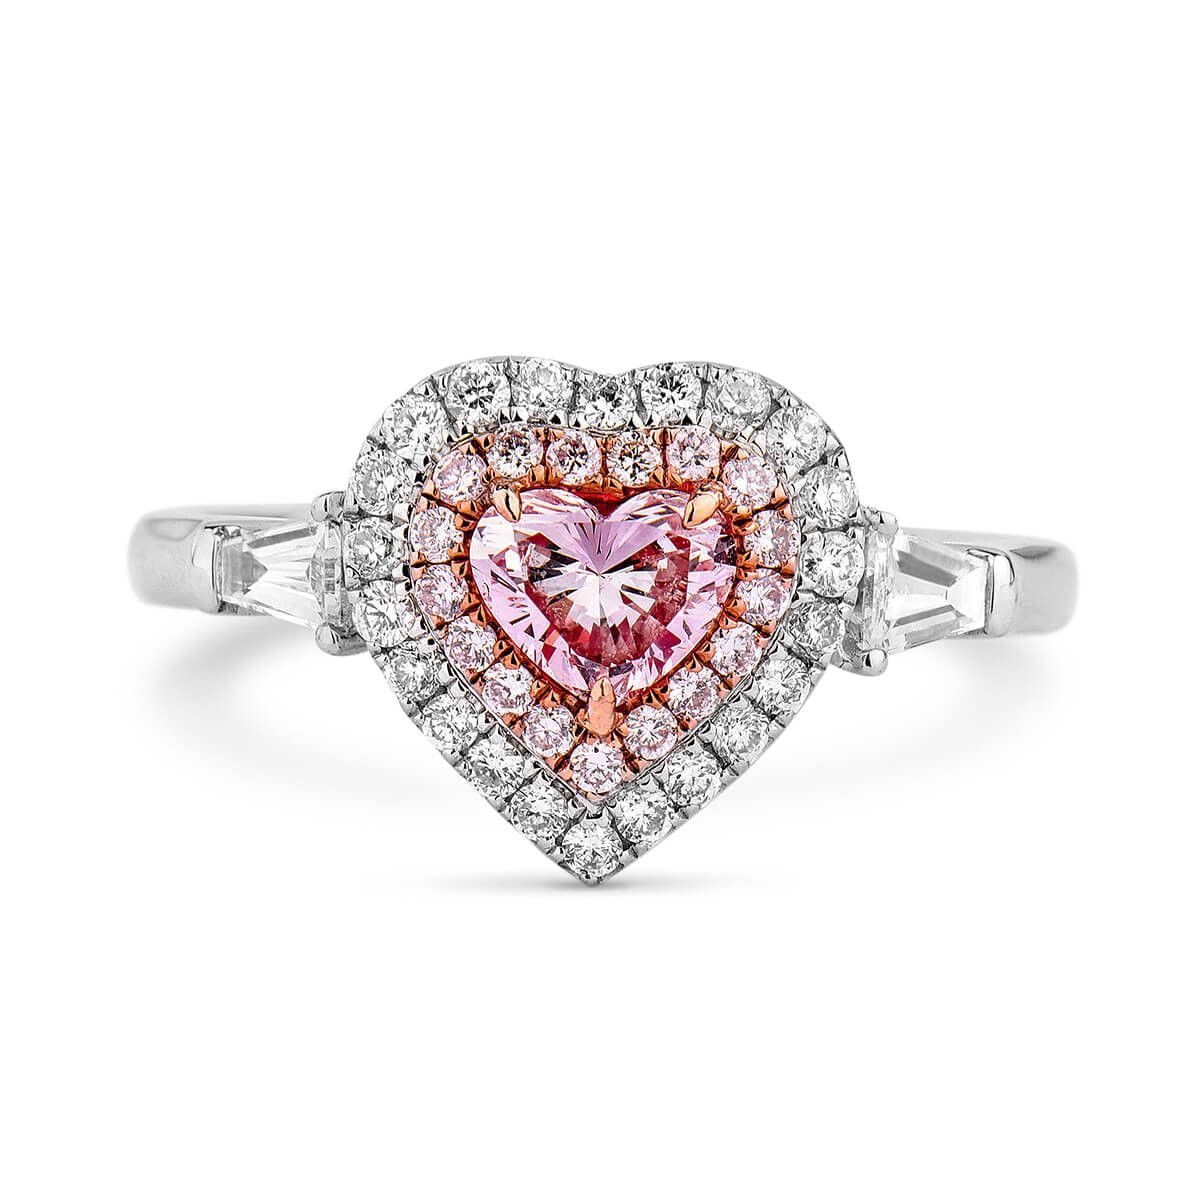 diamonds edit jewellery dress diamond cut pink colour radiant engagement halo rings intl ring product